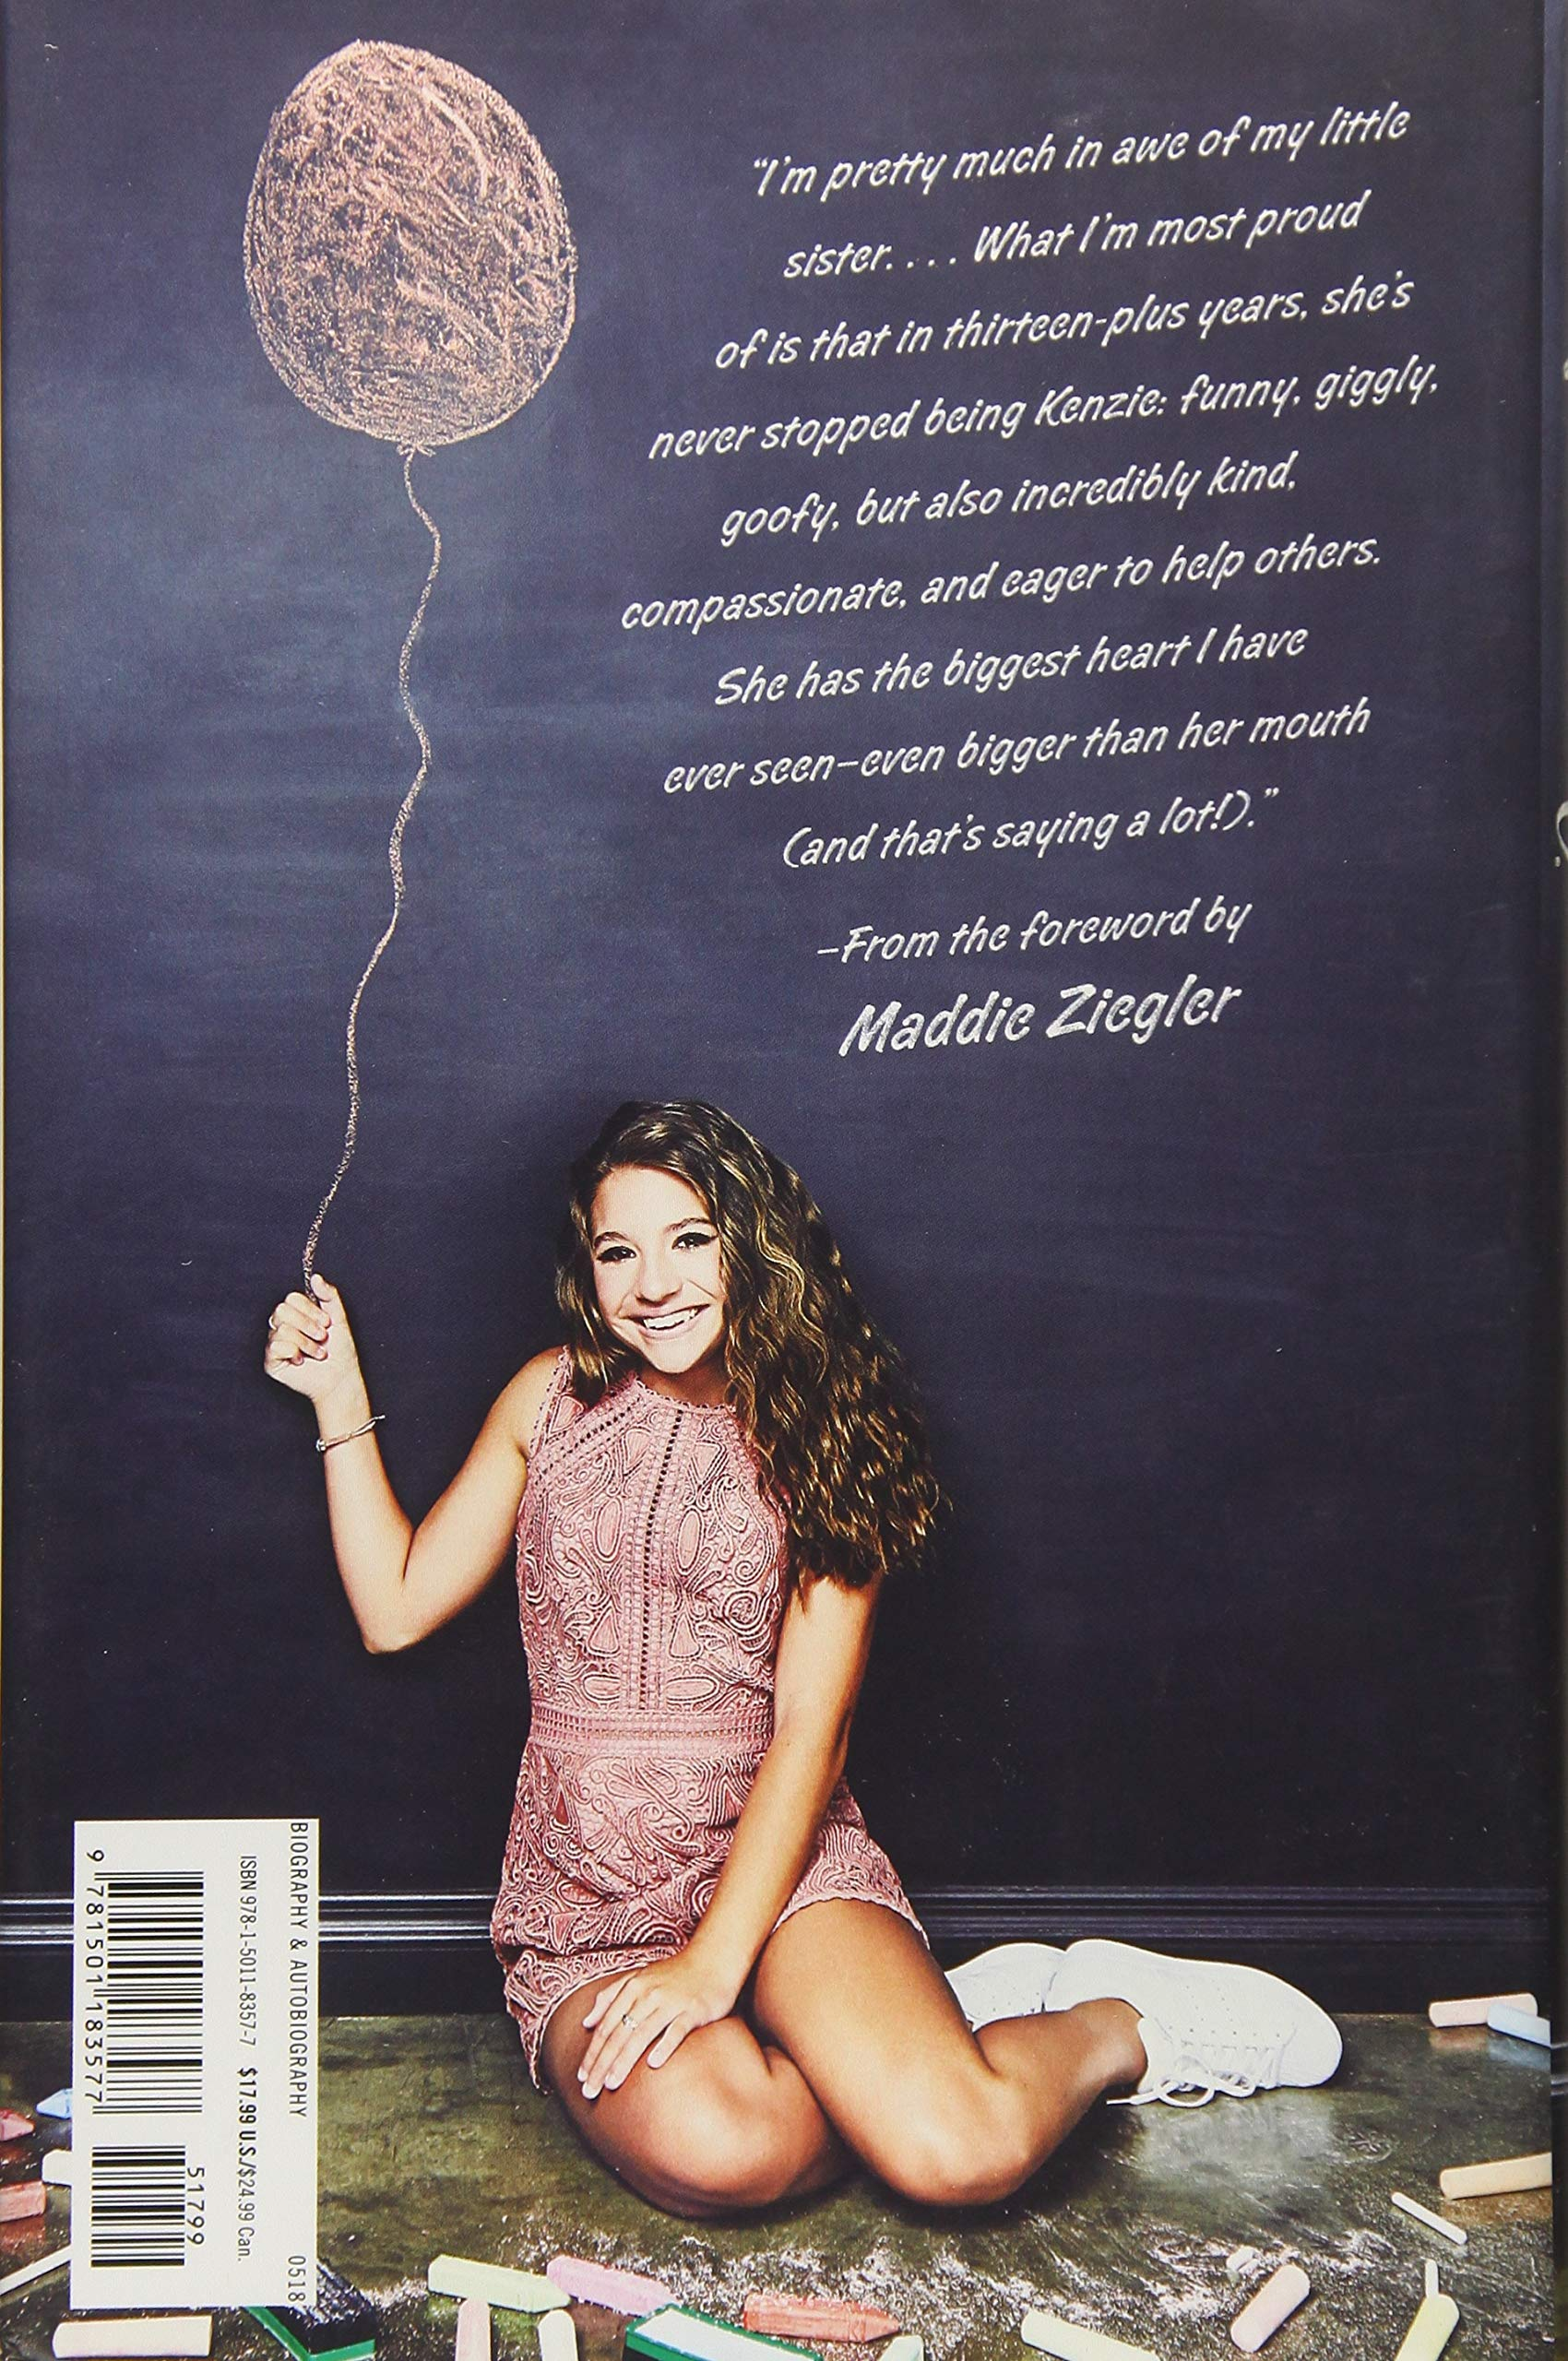 Amazon.com: Kenzie's Rules for Life: How to Be Happy, Healthy, and Dance to Your  Own Beat (9781501183577): Mackenzie Ziegler, Maddie Ziegler: Books